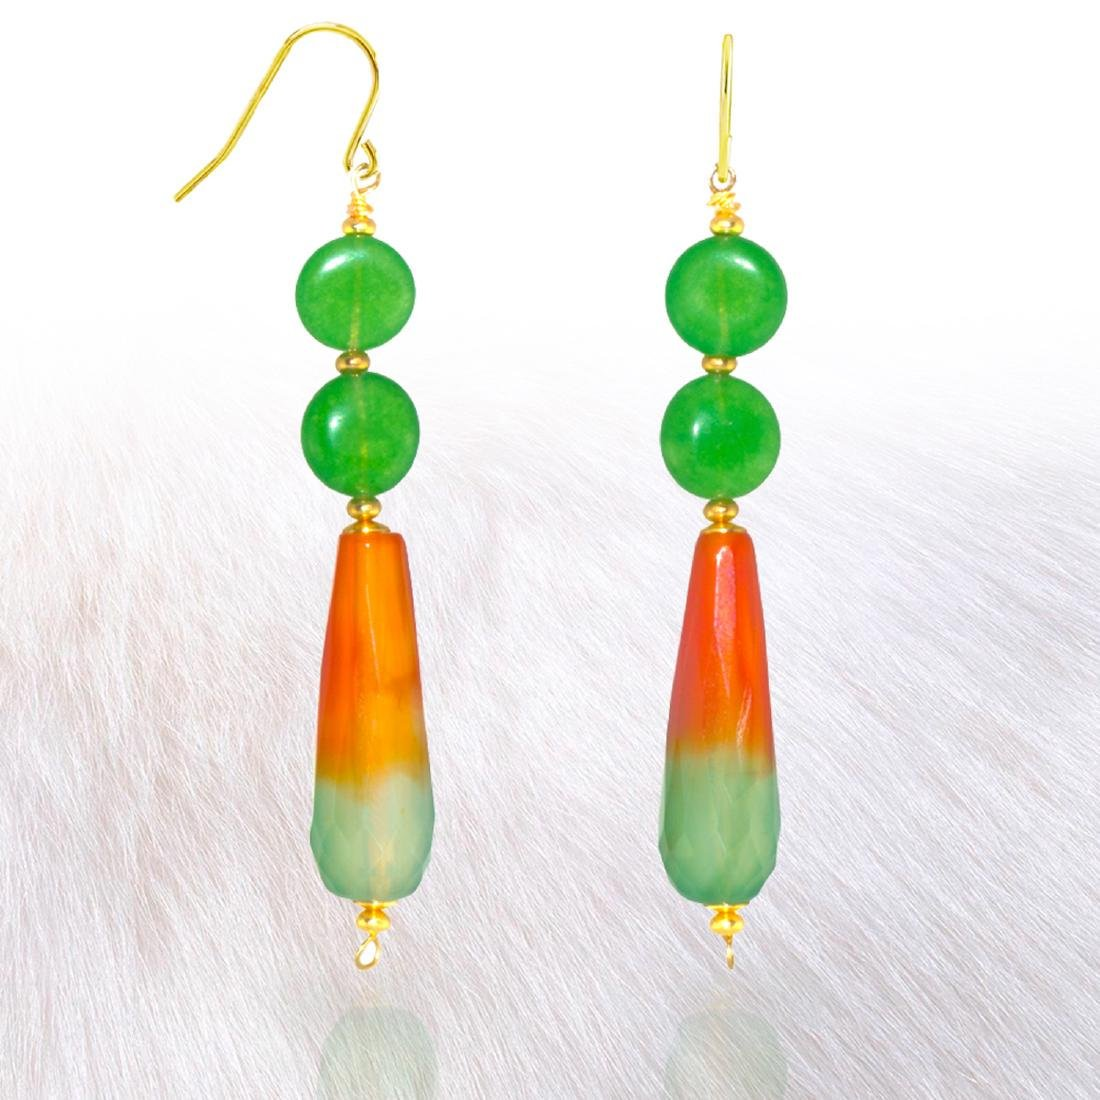 Green Fire Agate and Jadeite Jade Earrings